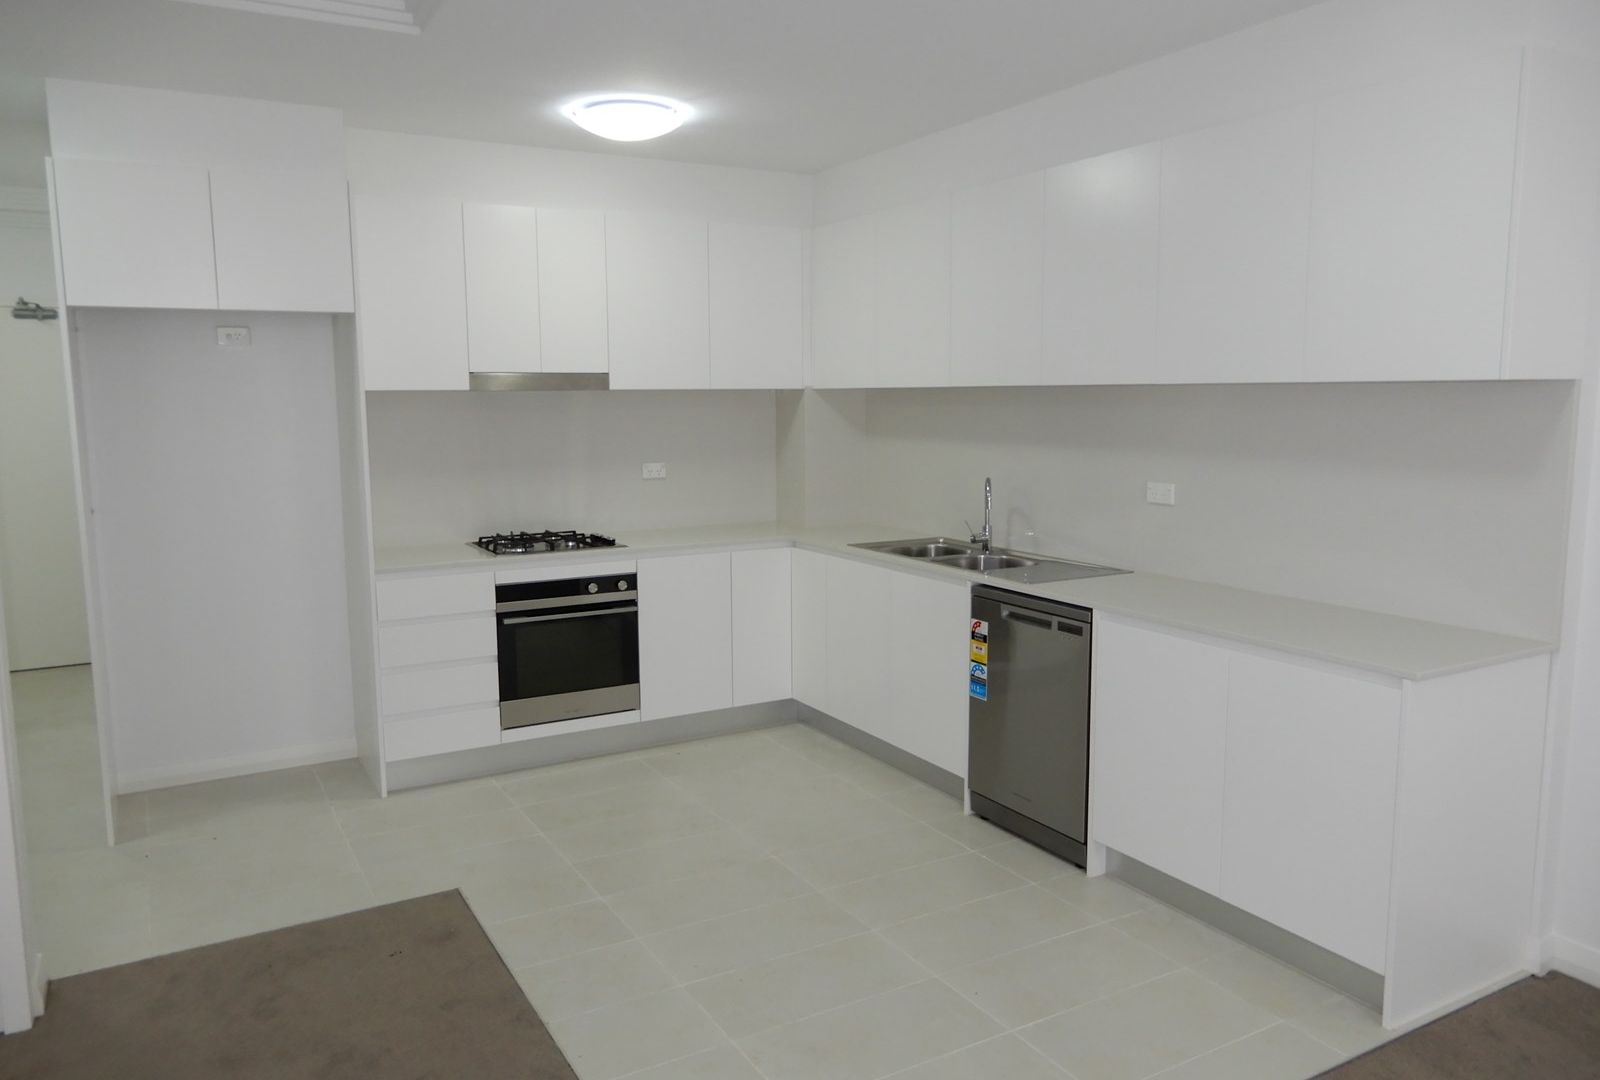 7/285-287 Condamine Street, Manly Vale NSW 2093, Image 2